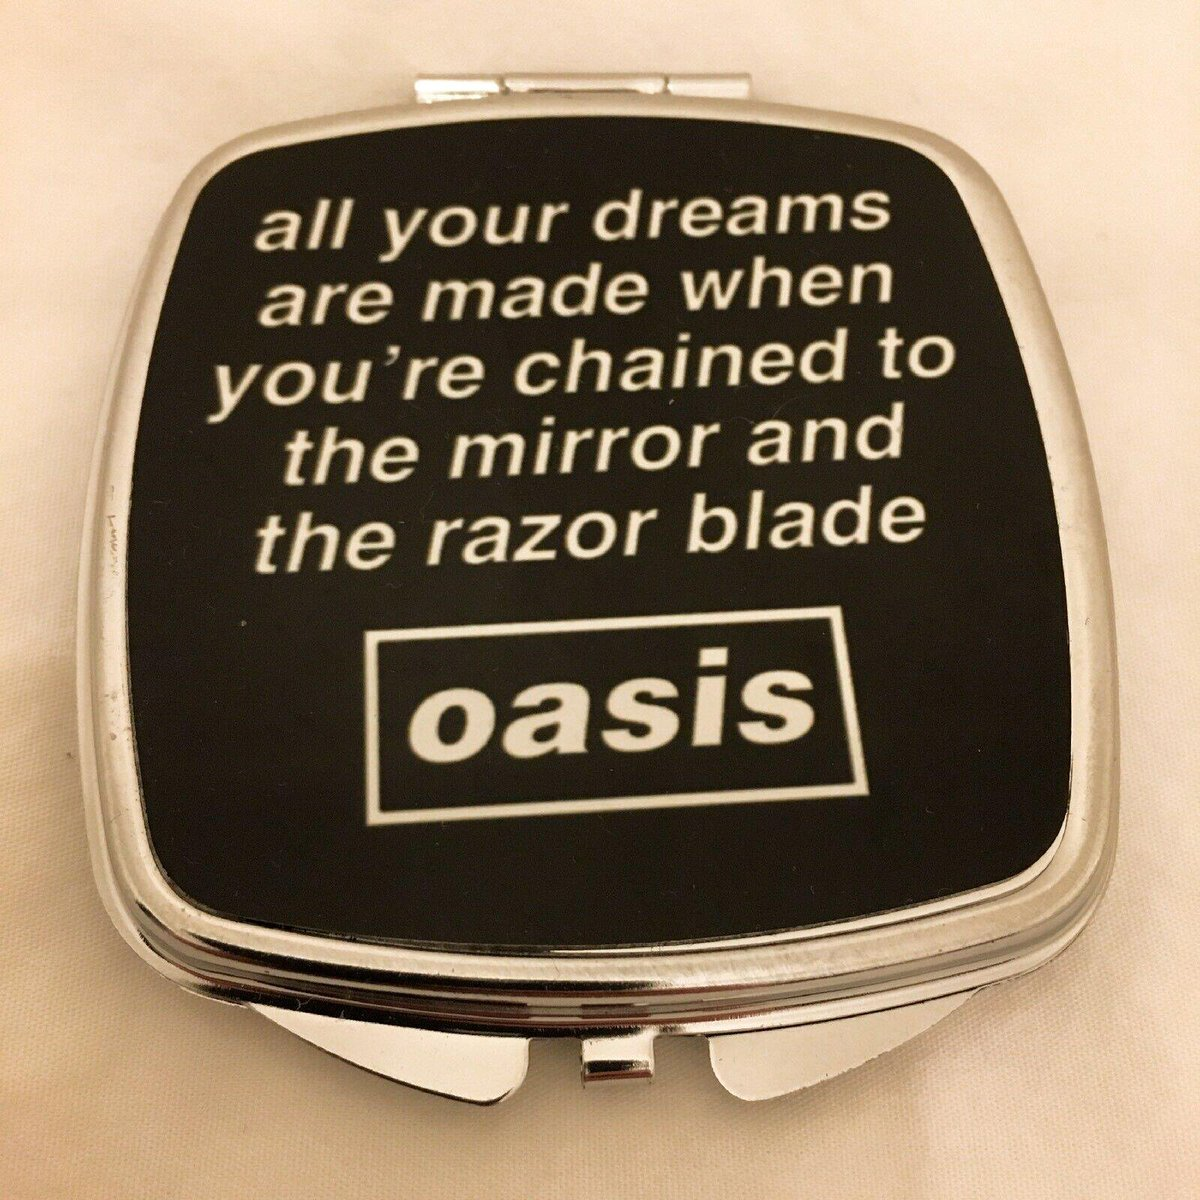 oasis - (What's the Story) Morning Glory?Lyric Pocket Mirrorhttps://dead-posh.com/collections/lifestyle/products/oasis-pocket-mirror…Made In England 🏴#deadposhuk #oasis #LiamGallagher #NoelGallagher #TheBeatles #nottobesniffedat #chisel #snow #beak #charlie #coke #flake #pubgrub #music #fashion #blizzard #toot #britpop